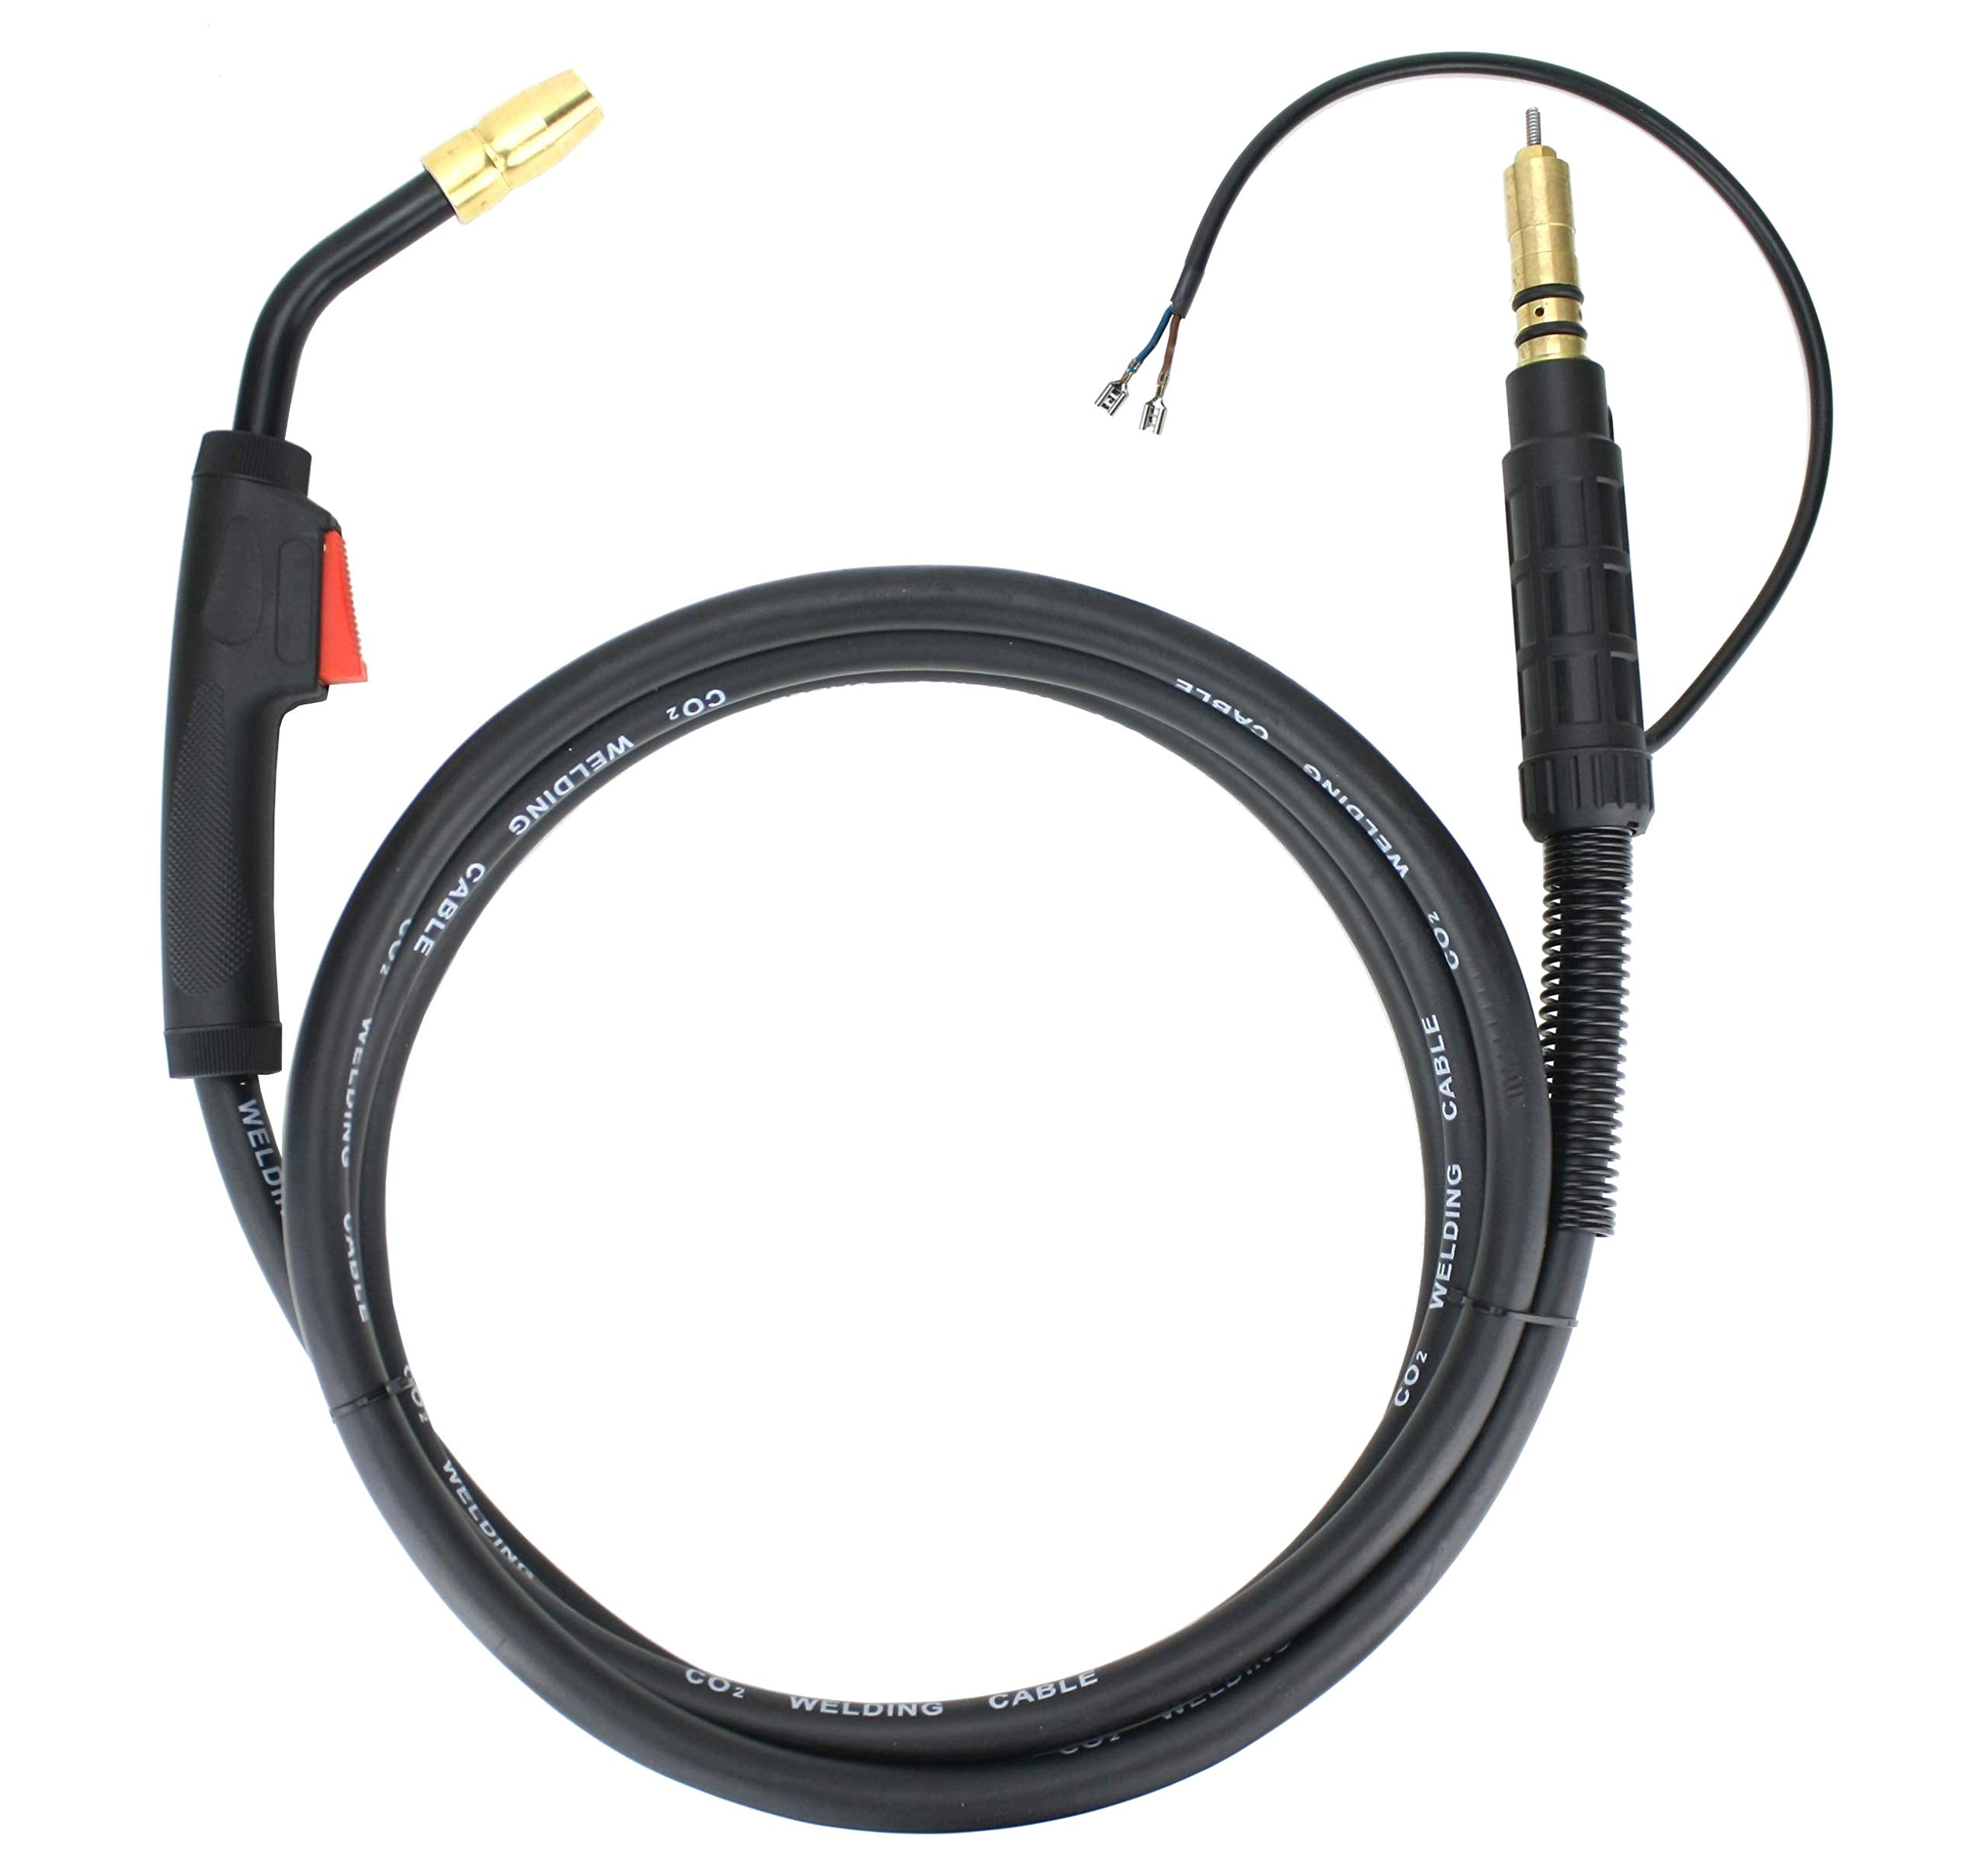 100 Amp MIG Gun Torch compatible with Hobart - 10 Feet Cable - Spade Terminals Signal Connectors by SÜA